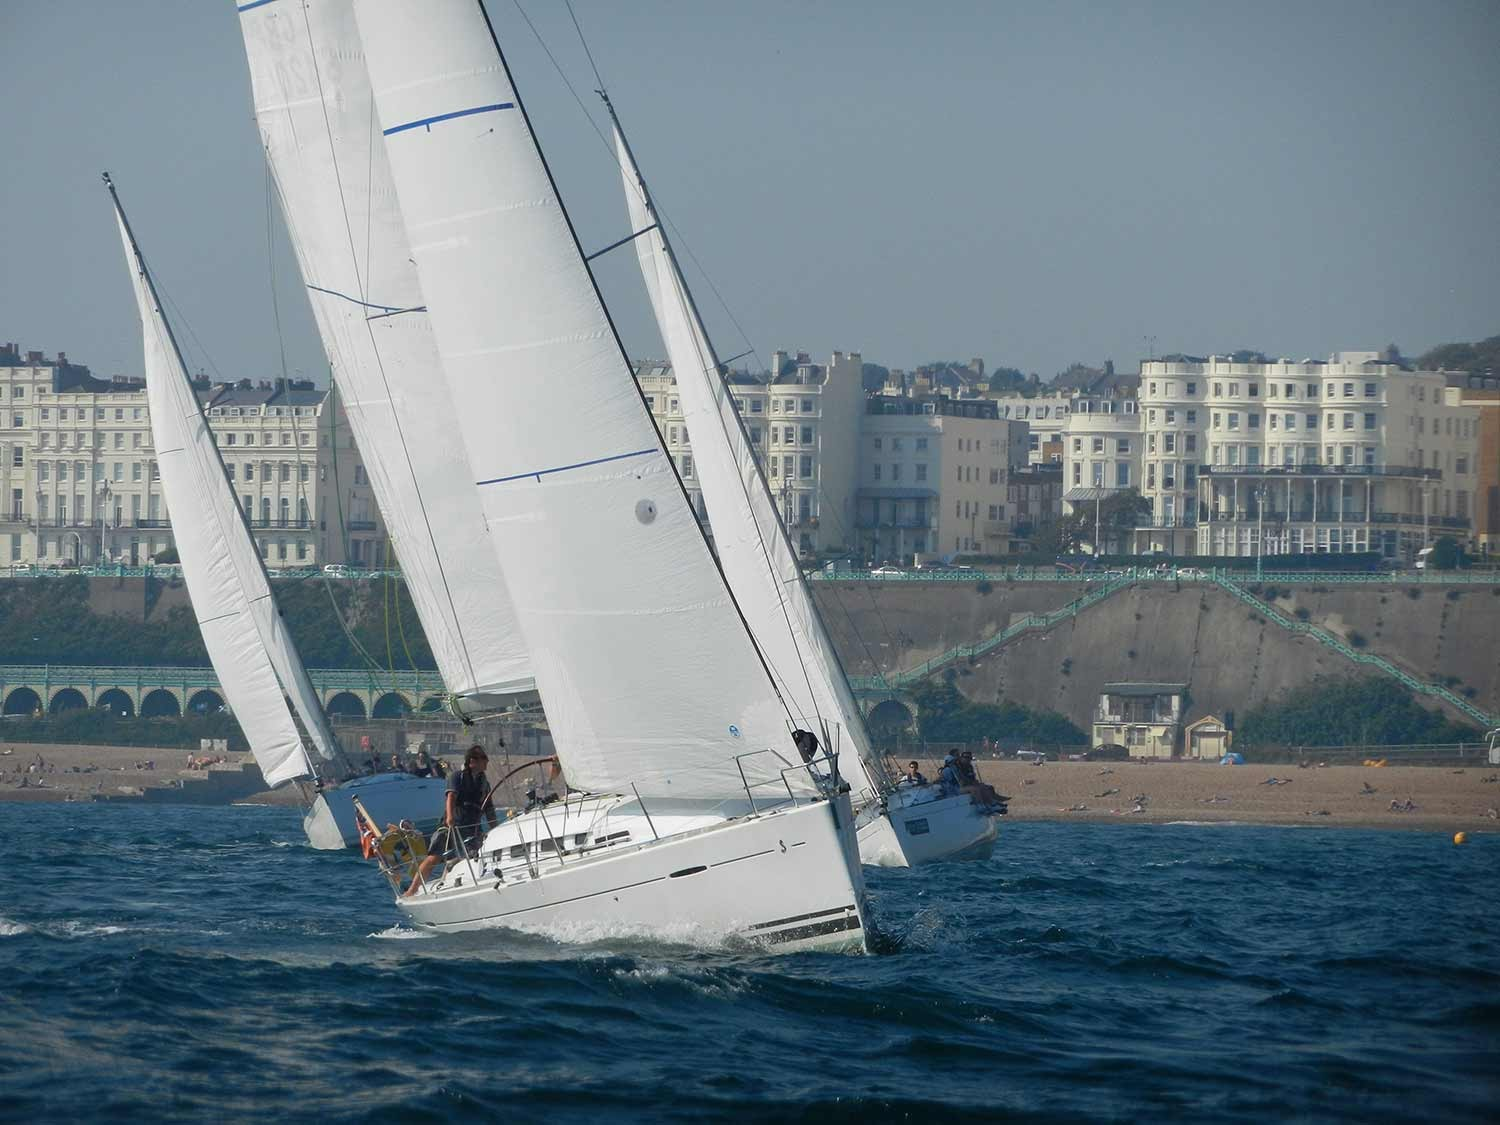 Yacht racing activity Brighton